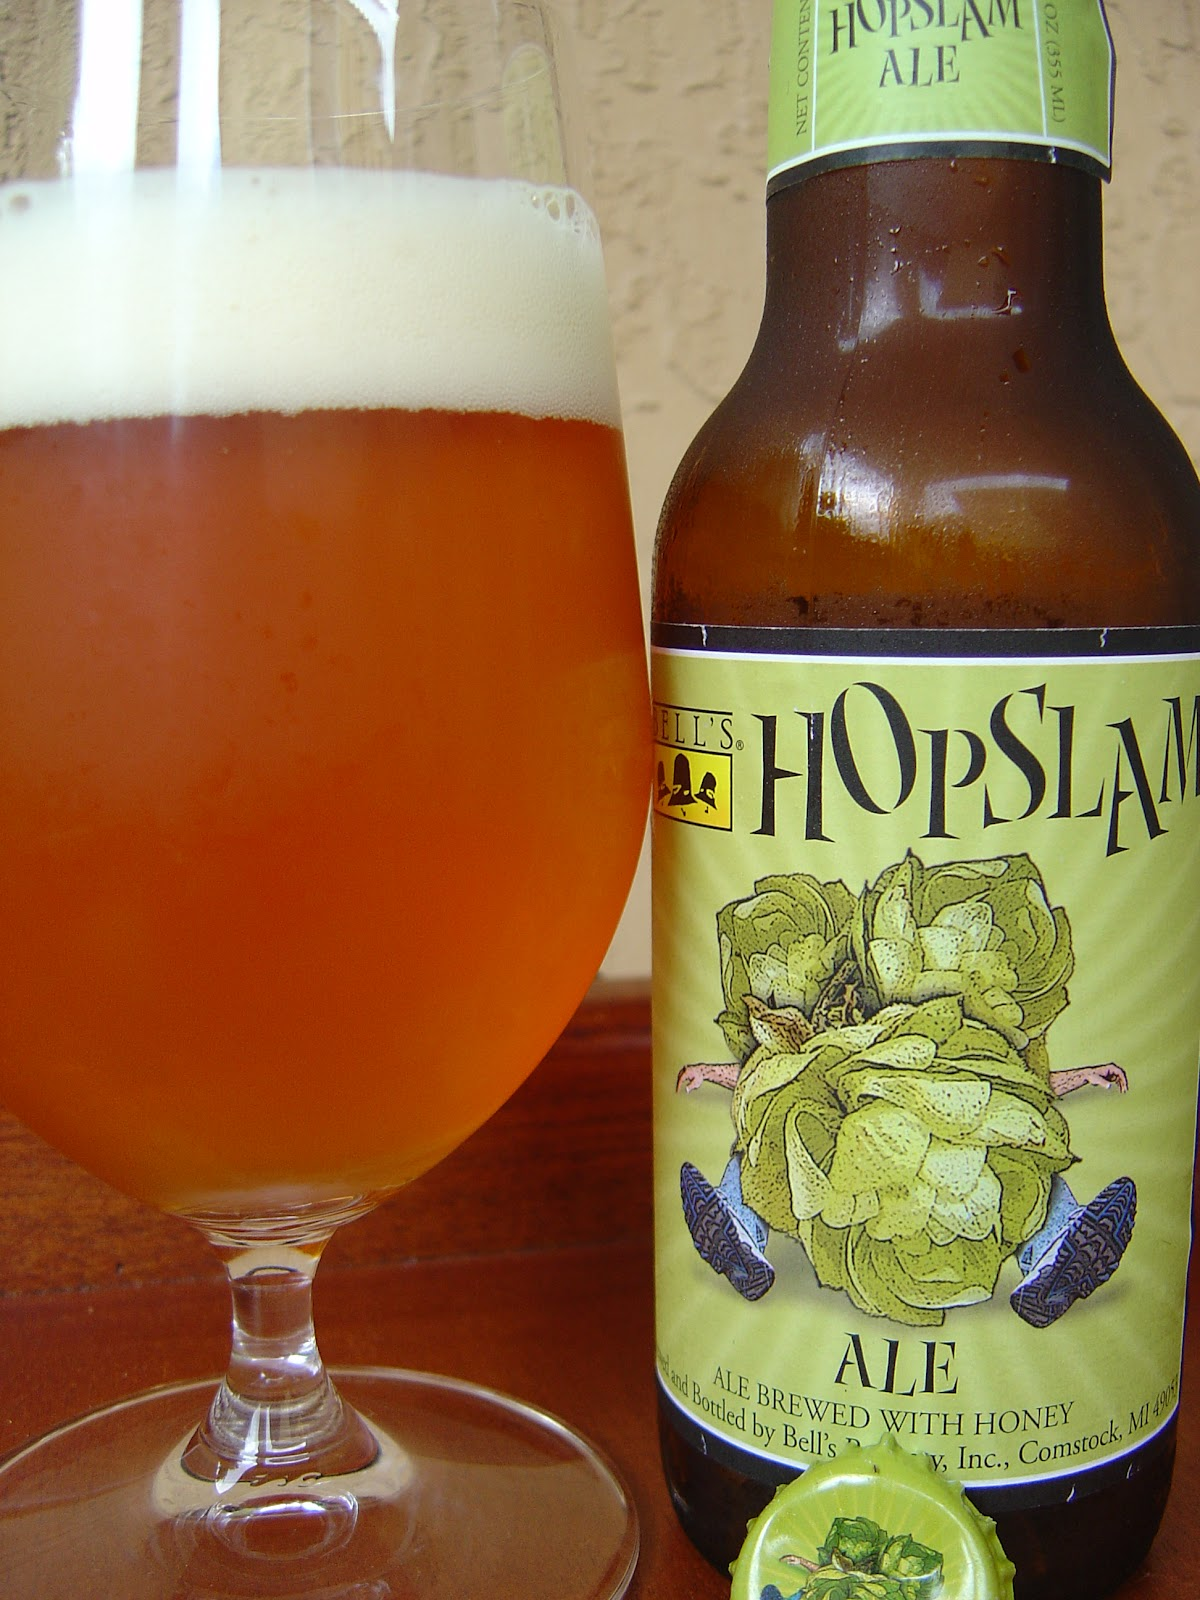 Daily Beer Review: Hopslam Ale